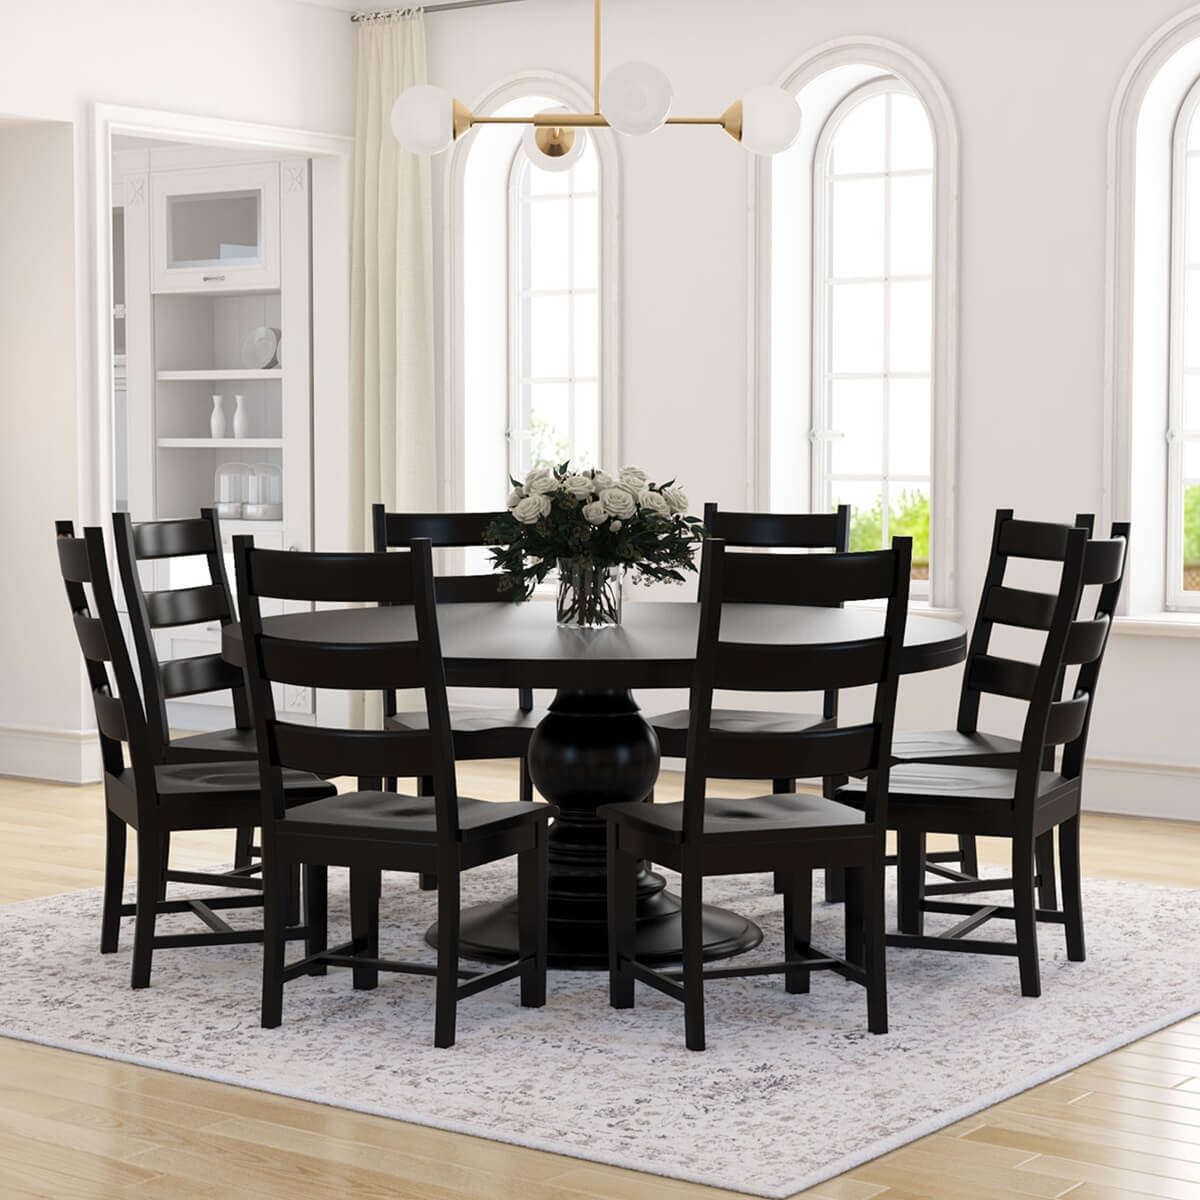 Nottingham Rustic Solid Wood Black Round Dining Room Table Set : 7119 from www.sierralivingconcepts.com size 1200 x 1200 jpeg 393kB